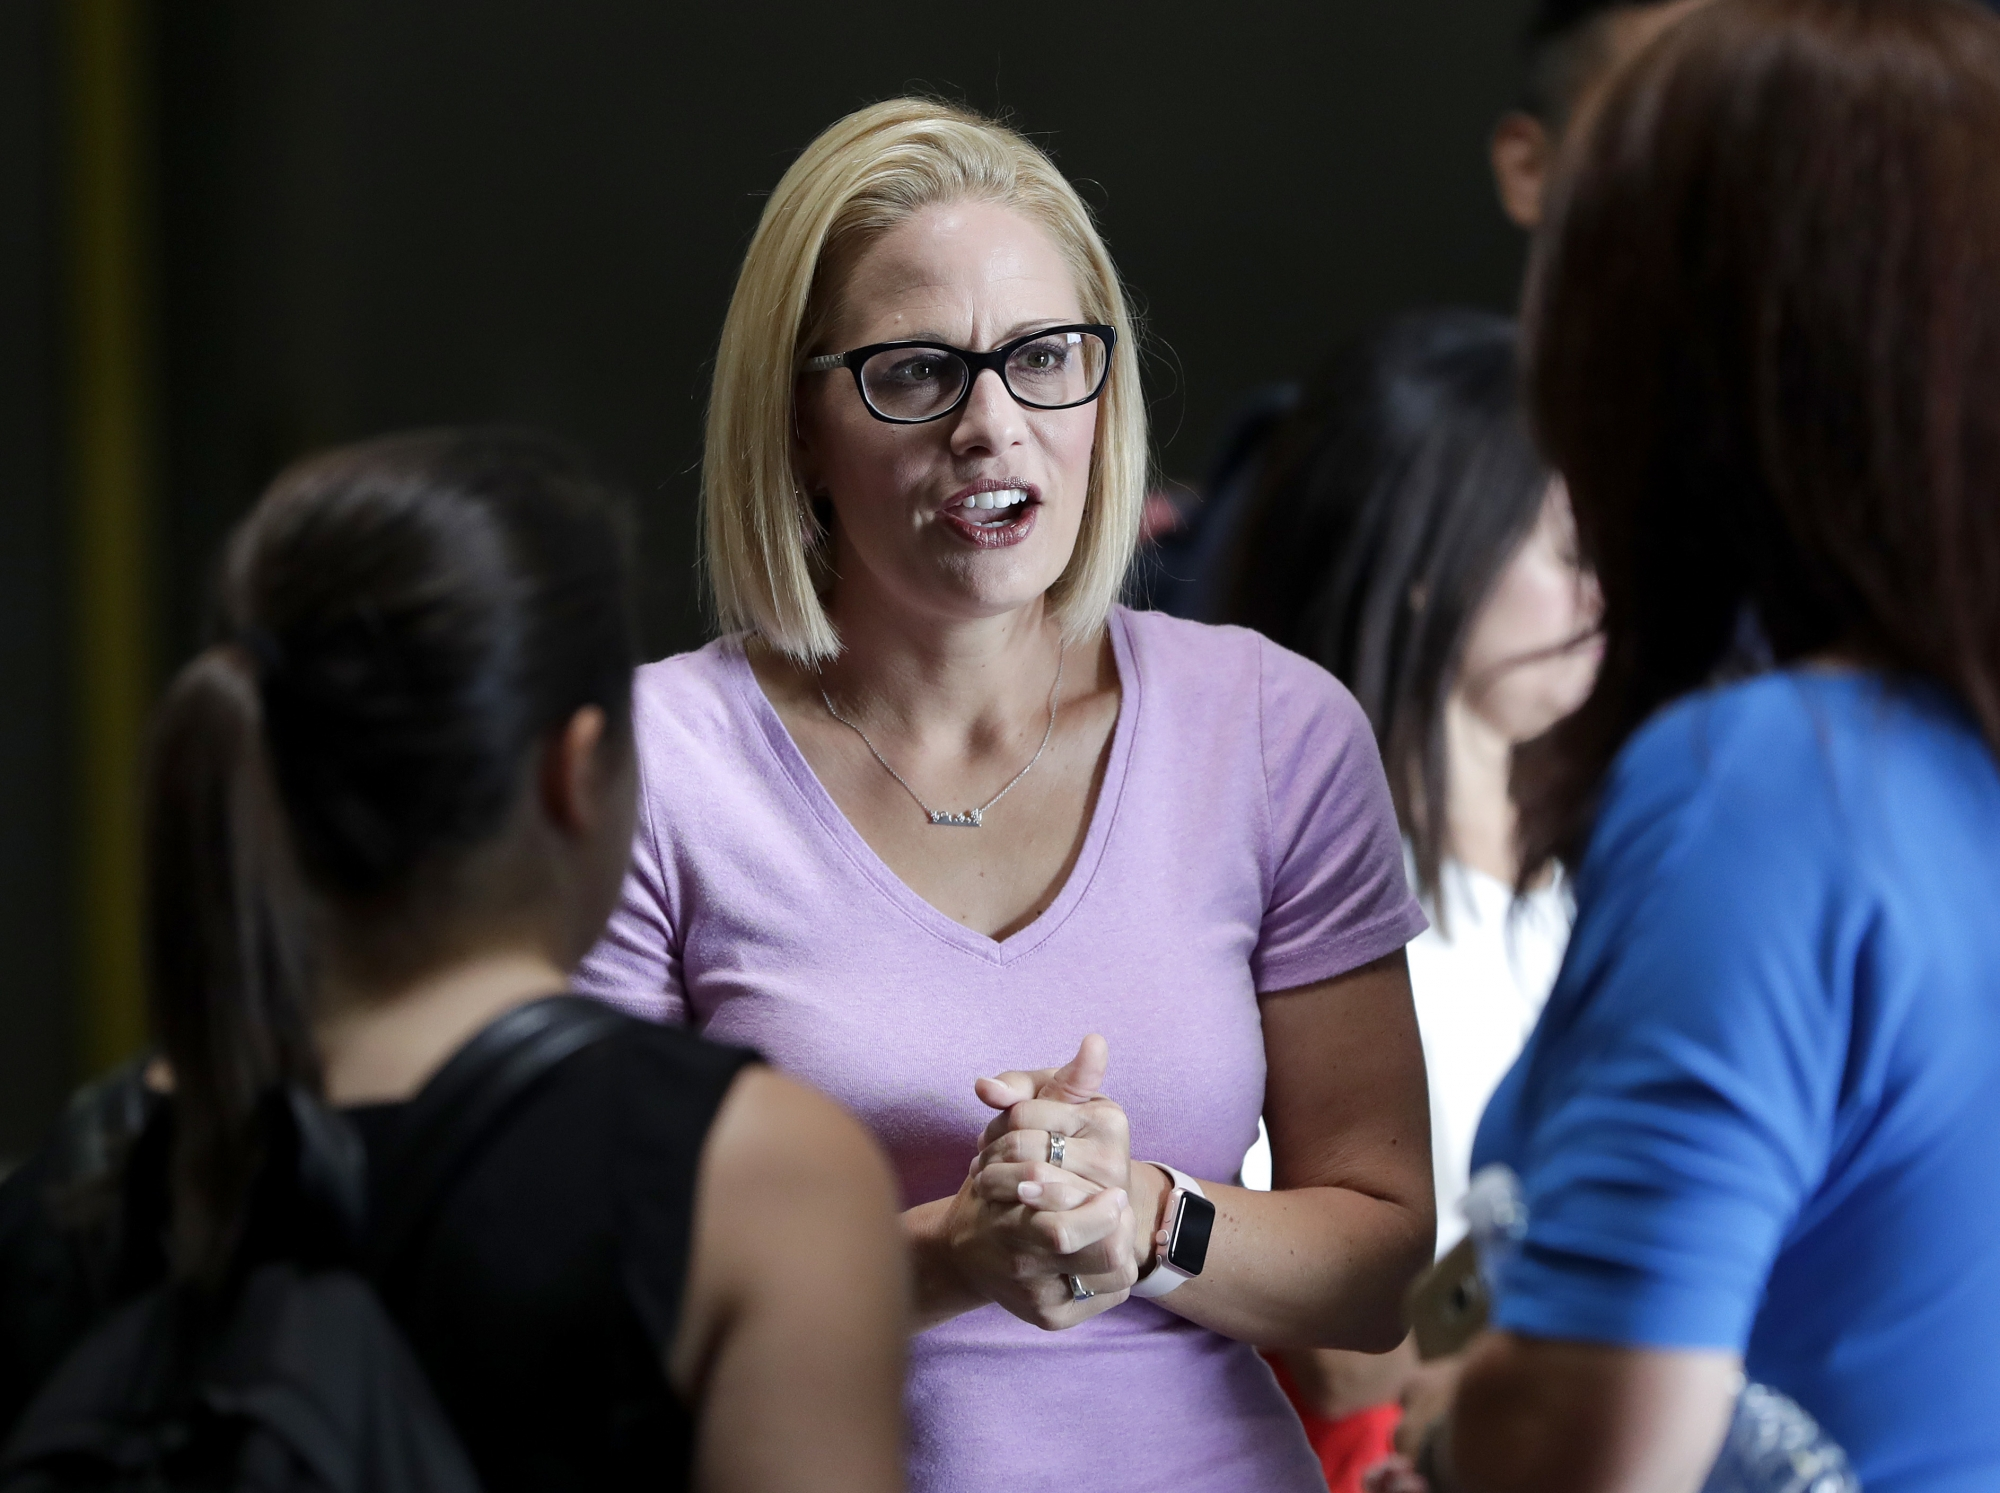 Arizona features 2 open House seats being eyed by Democrats